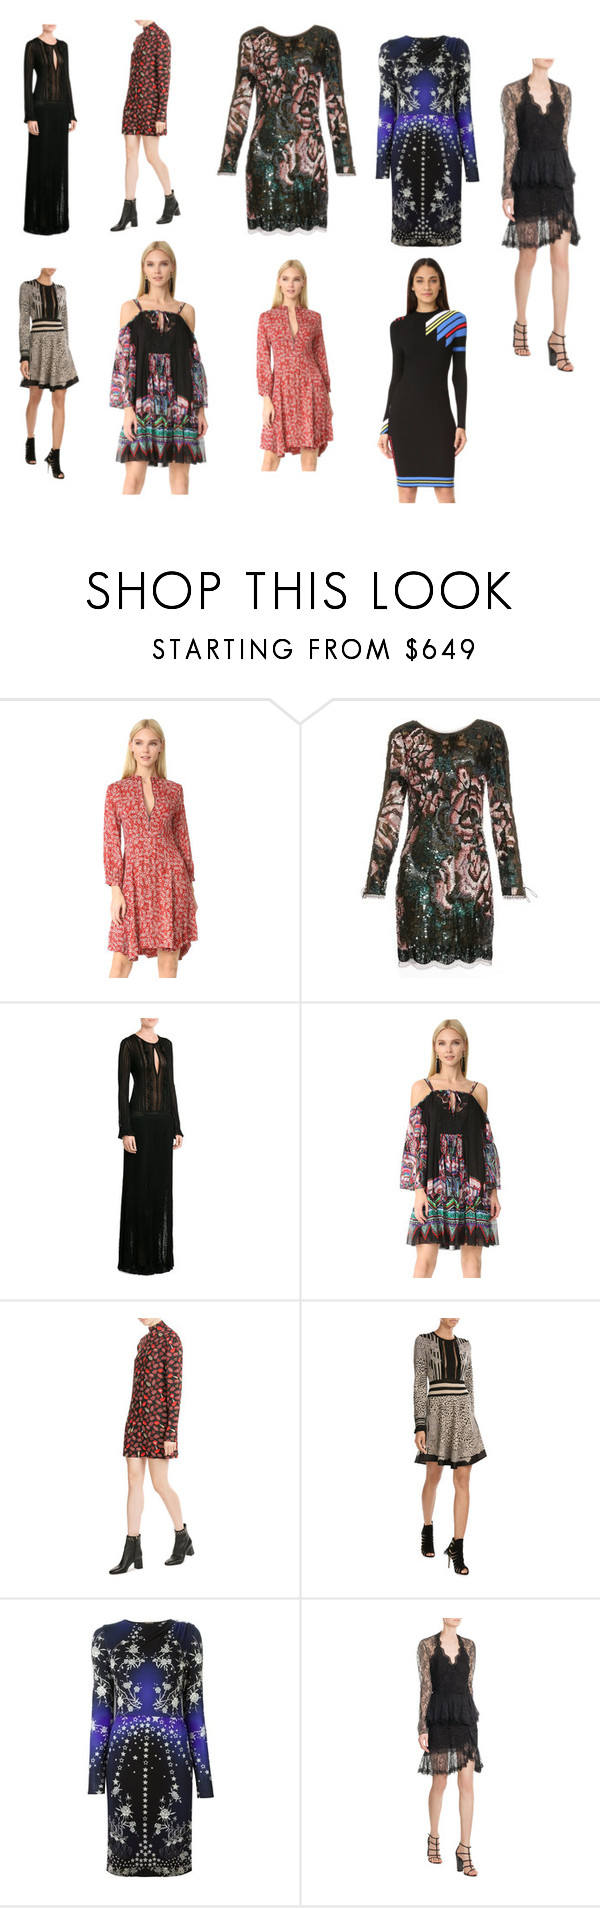 """""""dress tops casual wear dress"""" by monica022 ❤ liked on Polyvore featuring Belstaff, Roberto Cavalli, Just Cavalli, Versace and vintage"""